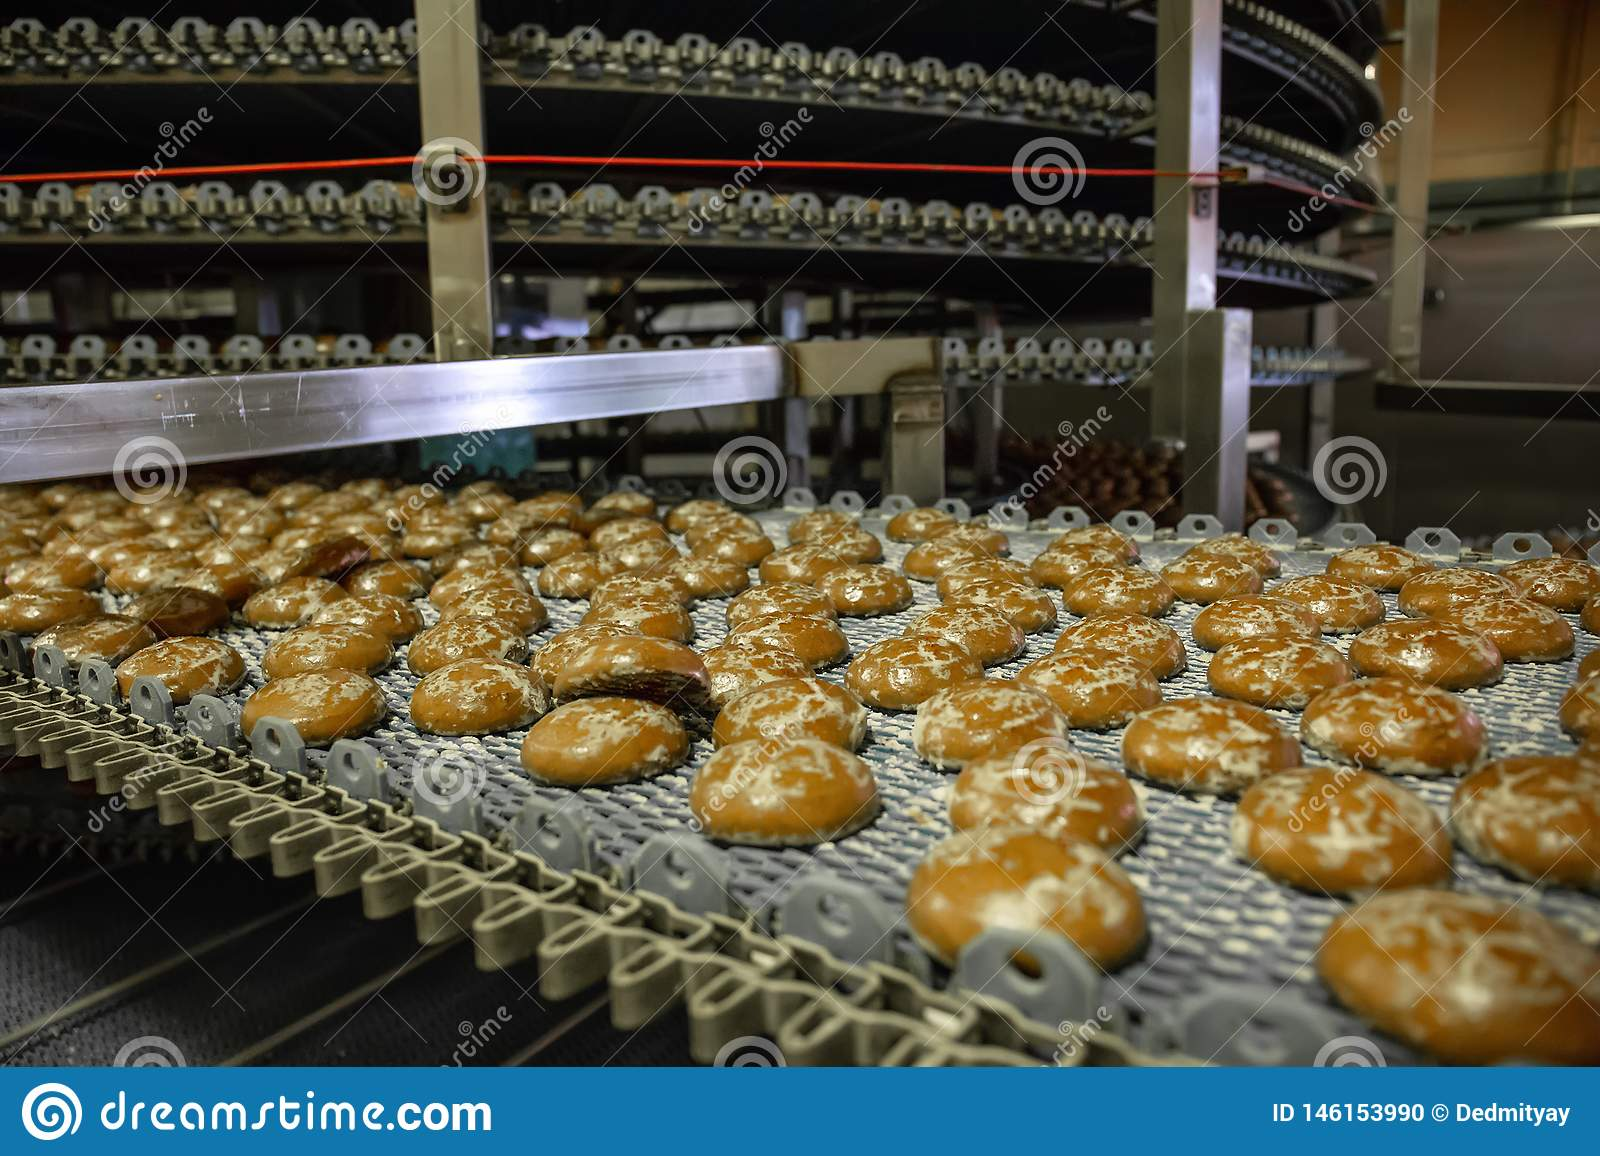 Automated conveyor line or belt machine in bakery or confectionery food factory, cookies and cakes production manufactory